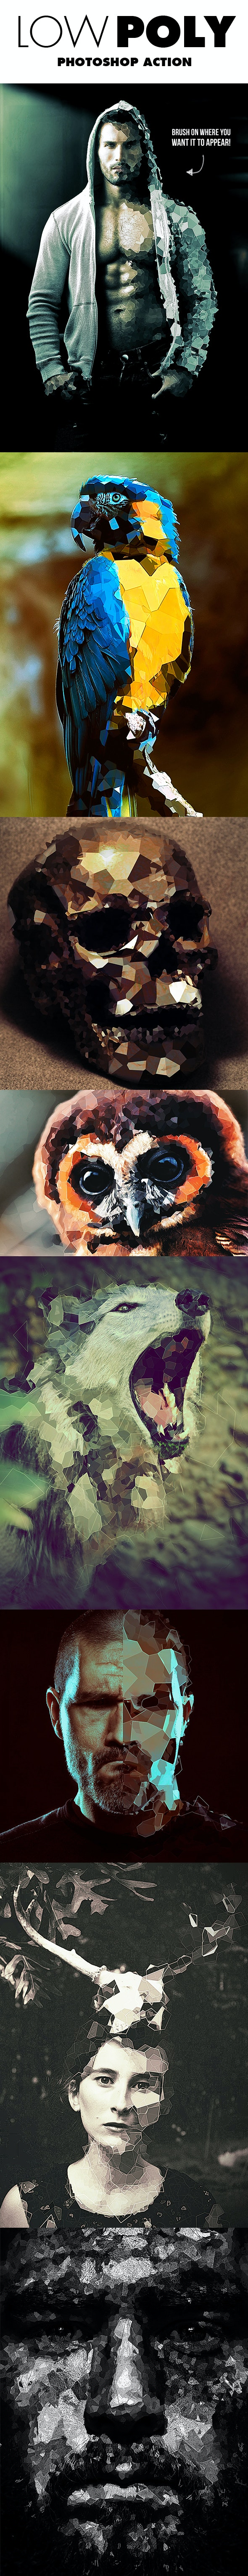 Low Poly Photoshop Action - Photo Effects Actions